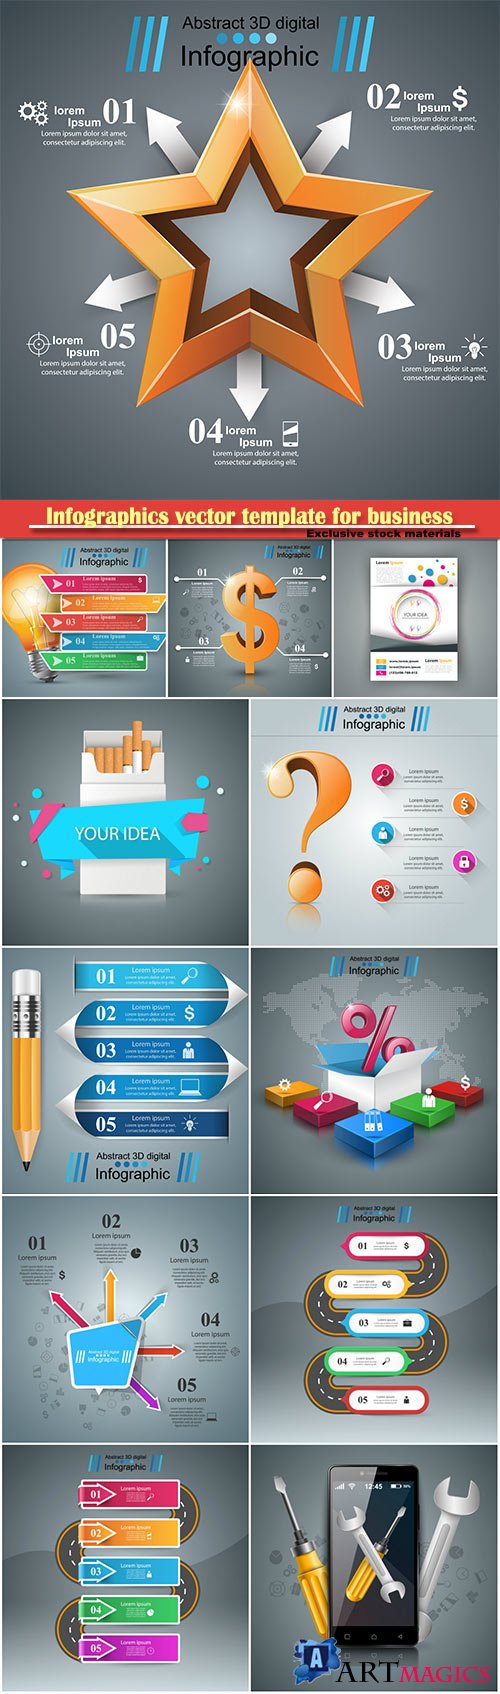 Infographics vector template for business presentations or information banner # 65